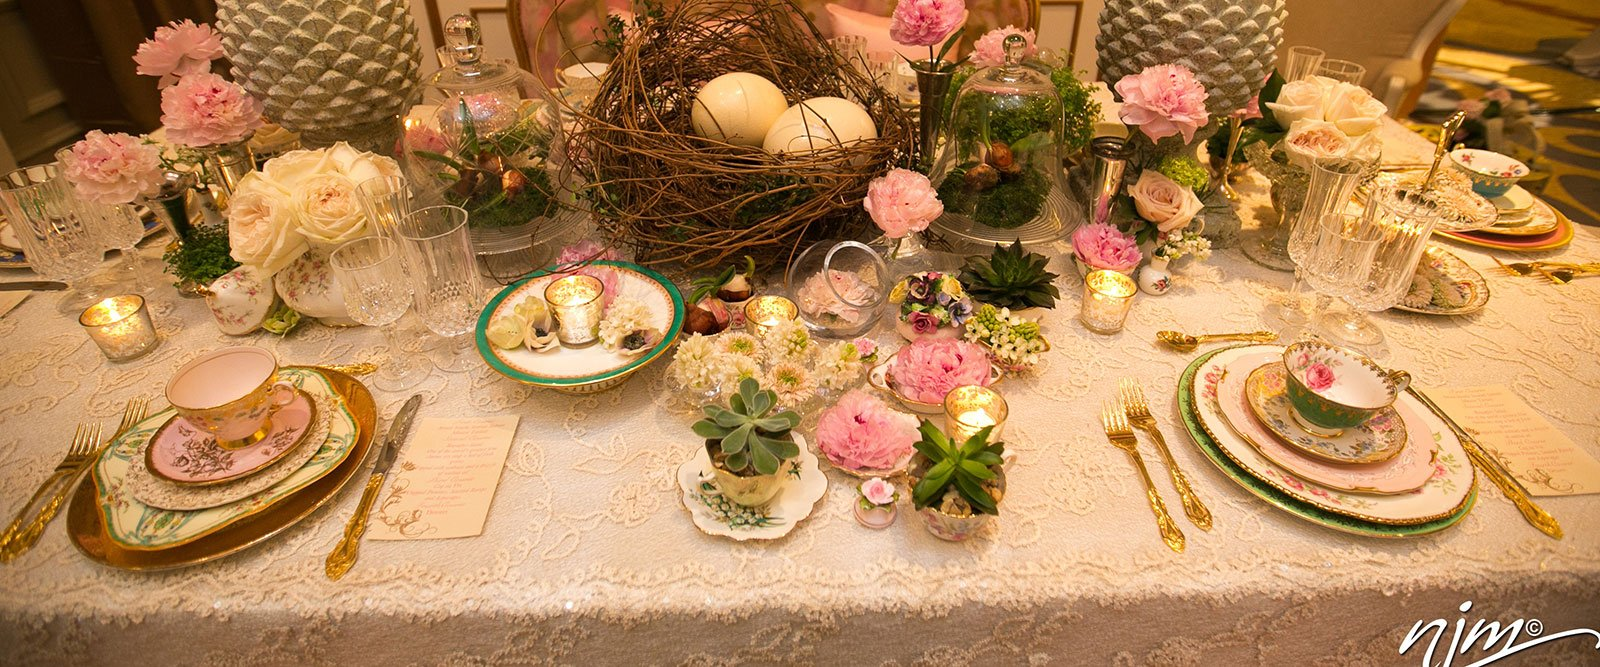 Table With Eggs